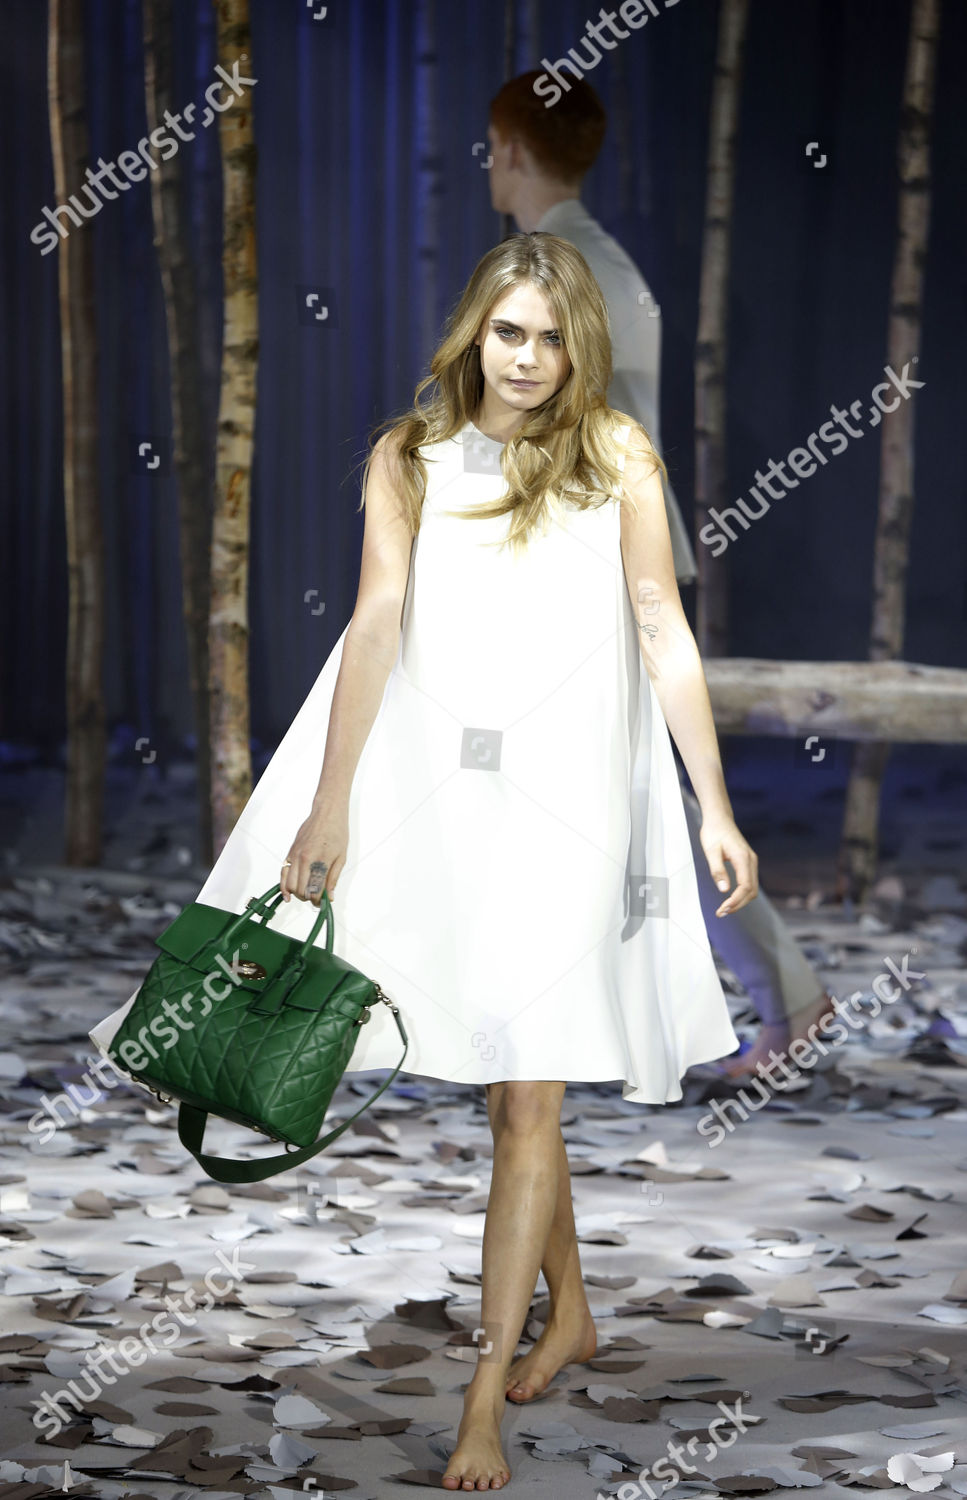 9807b1c99be4 Cara Delevigne Models For Mulberry Autumn winter 2014 15 Collection At  London Fashion Week